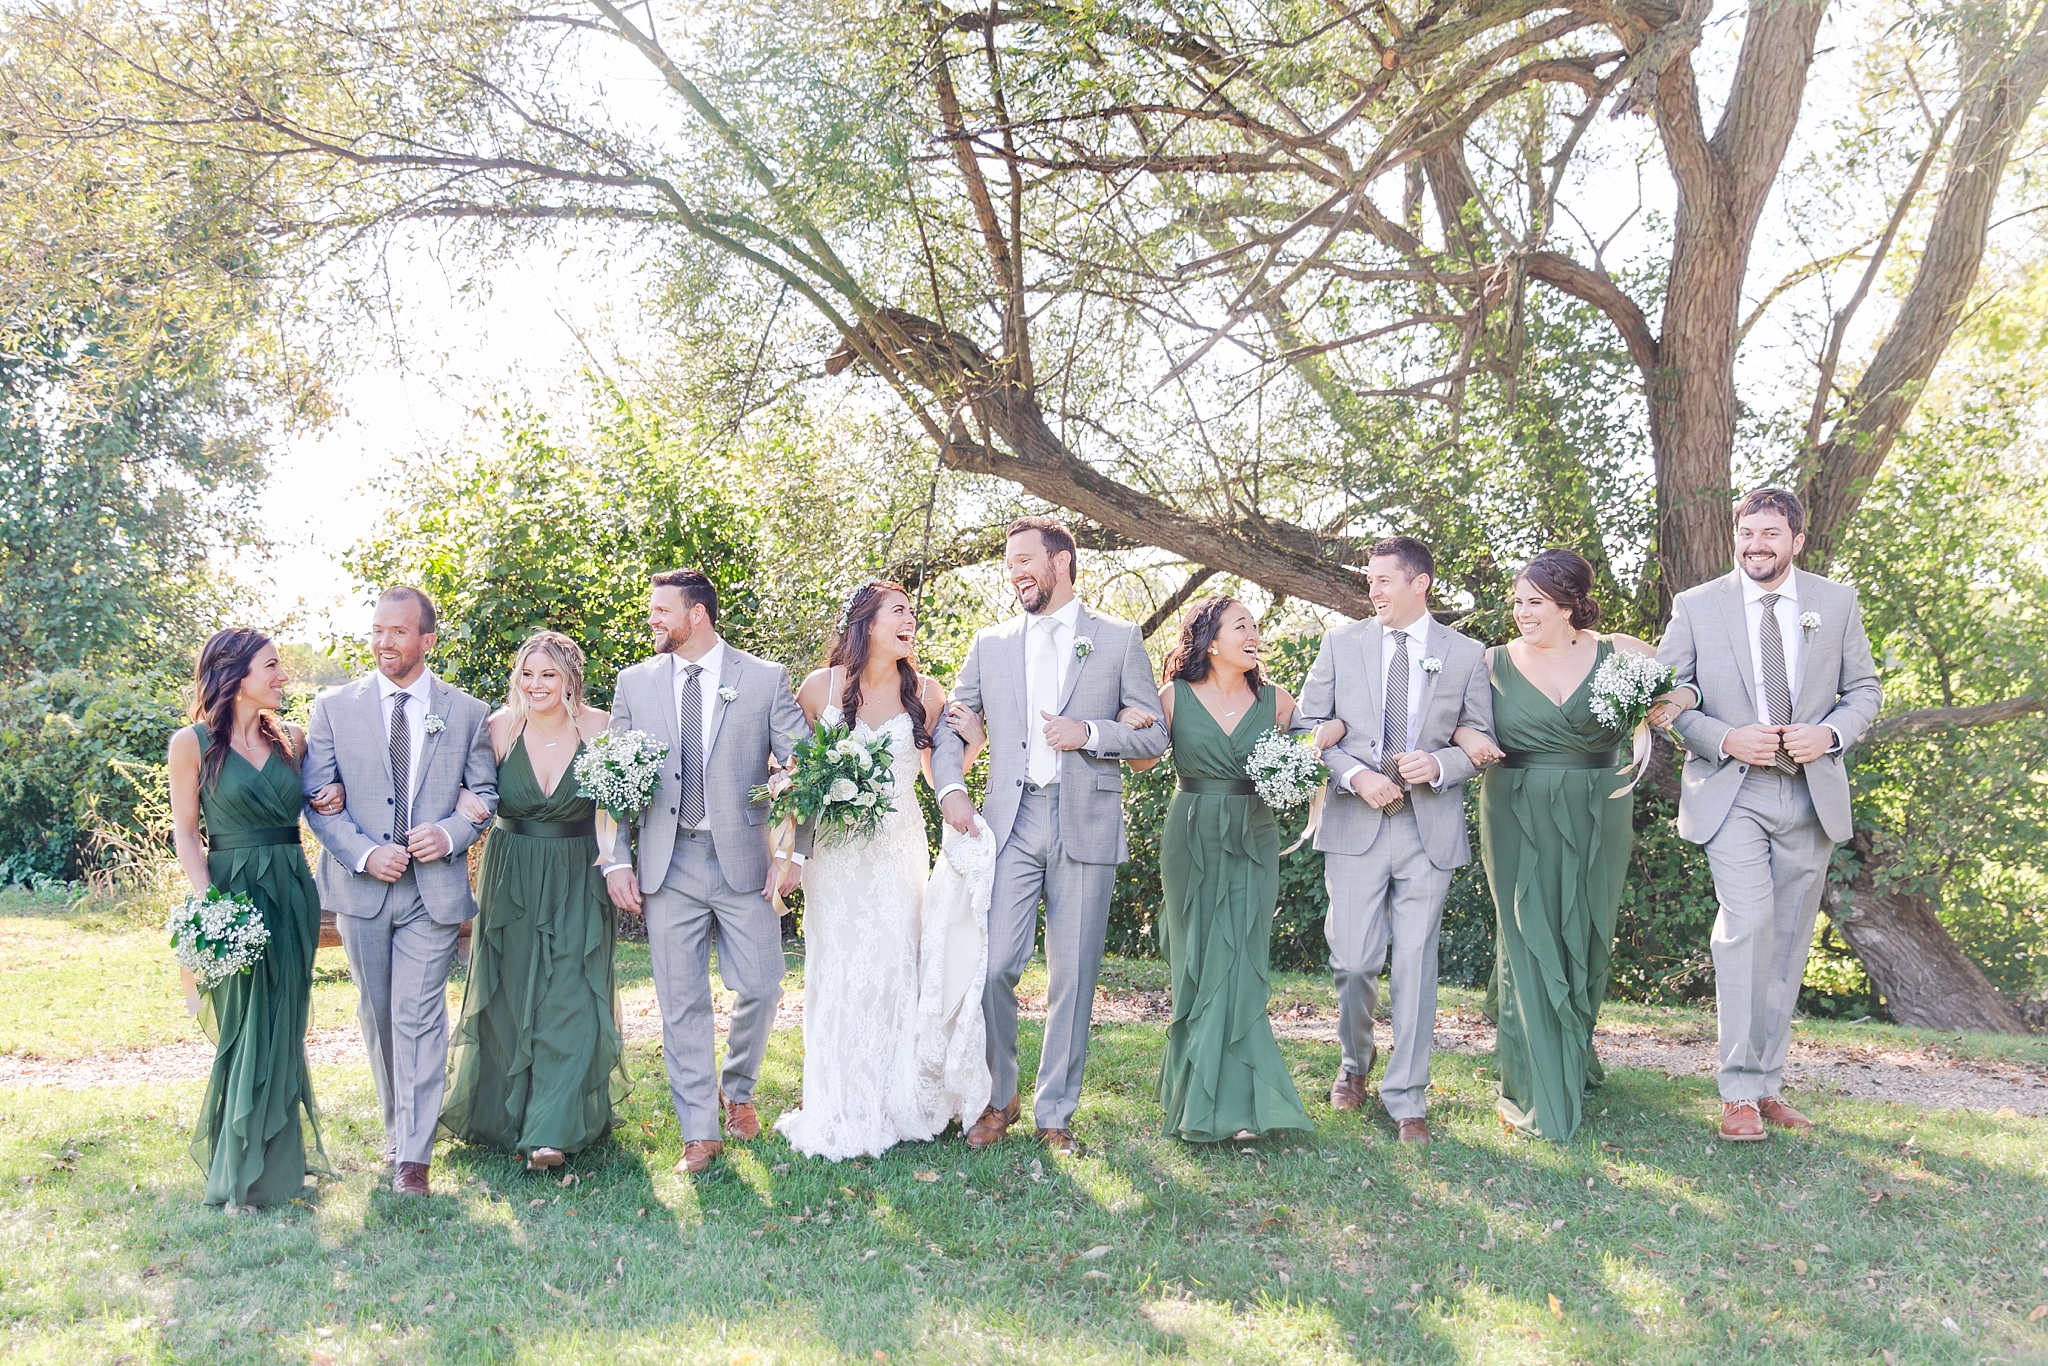 natural-rustic-wedding-photos-at-frutig-farms-the-valley-in-ann-arbor-michigan-by-courtney-carolyn-photography_0034.jpg